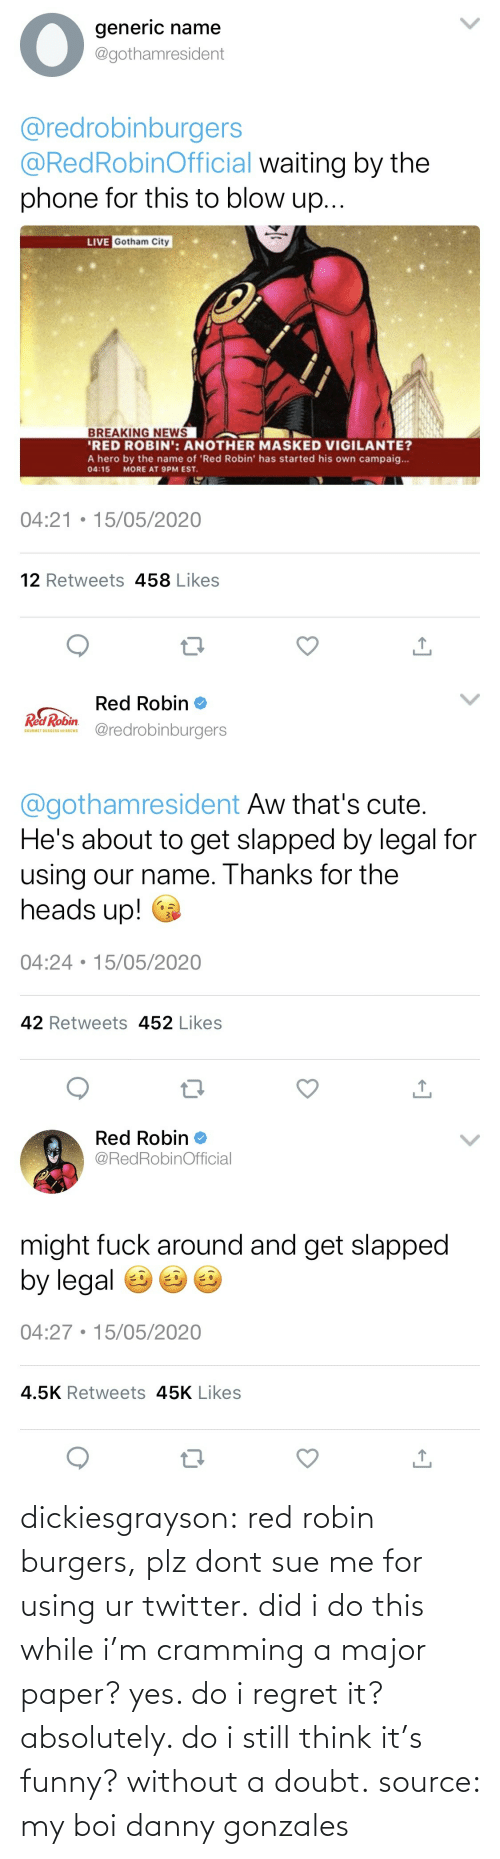 think: dickiesgrayson:  red robin burgers, plz dont sue me for using ur twitter. did i do this while i'm cramming a major paper? yes. do i regret it? absolutely. do i still think it's funny? without a doubt. source: my boi danny gonzales